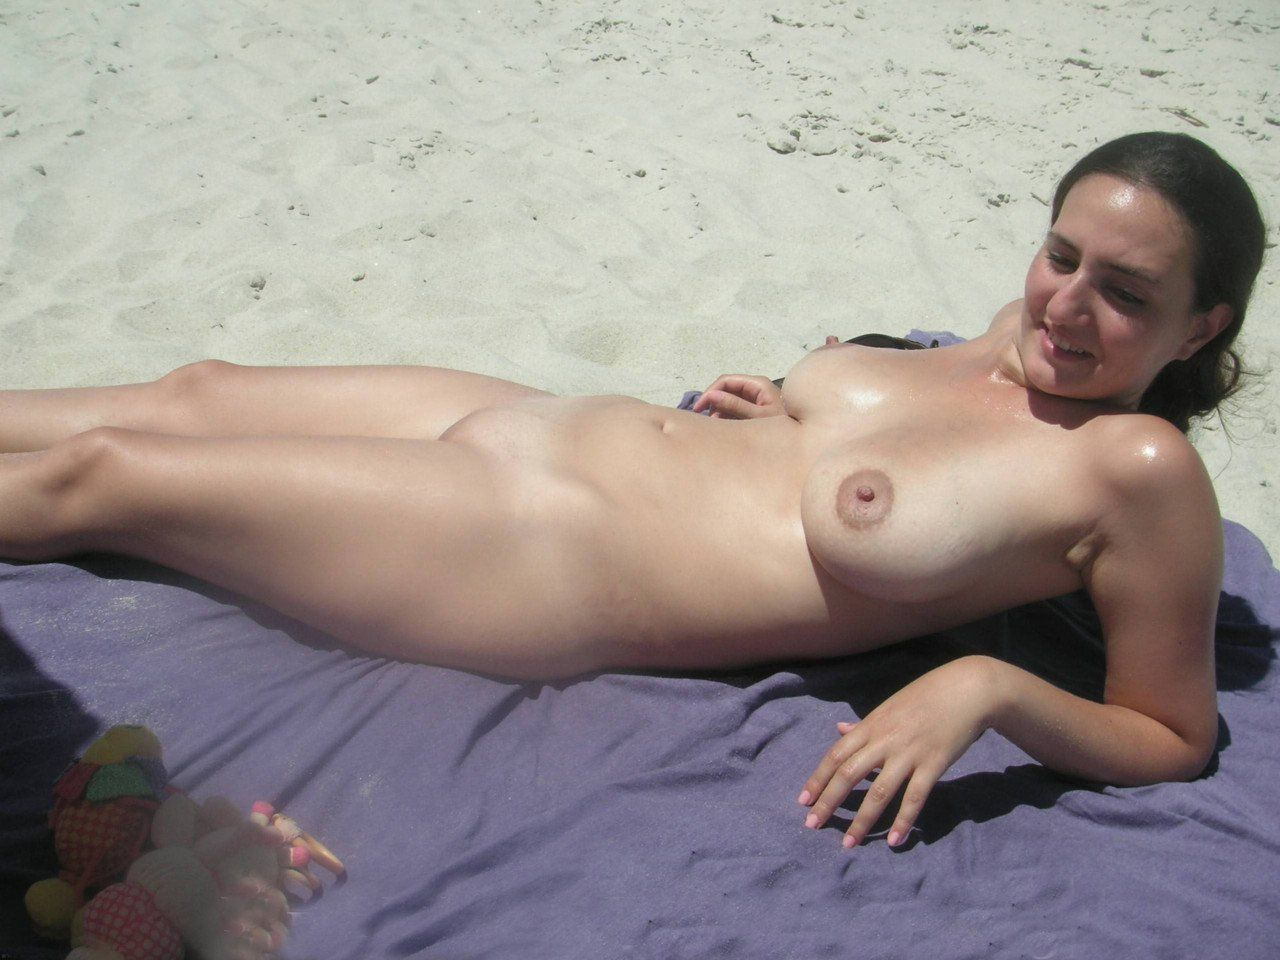 Join. dick voyeur cock beach florida nude that